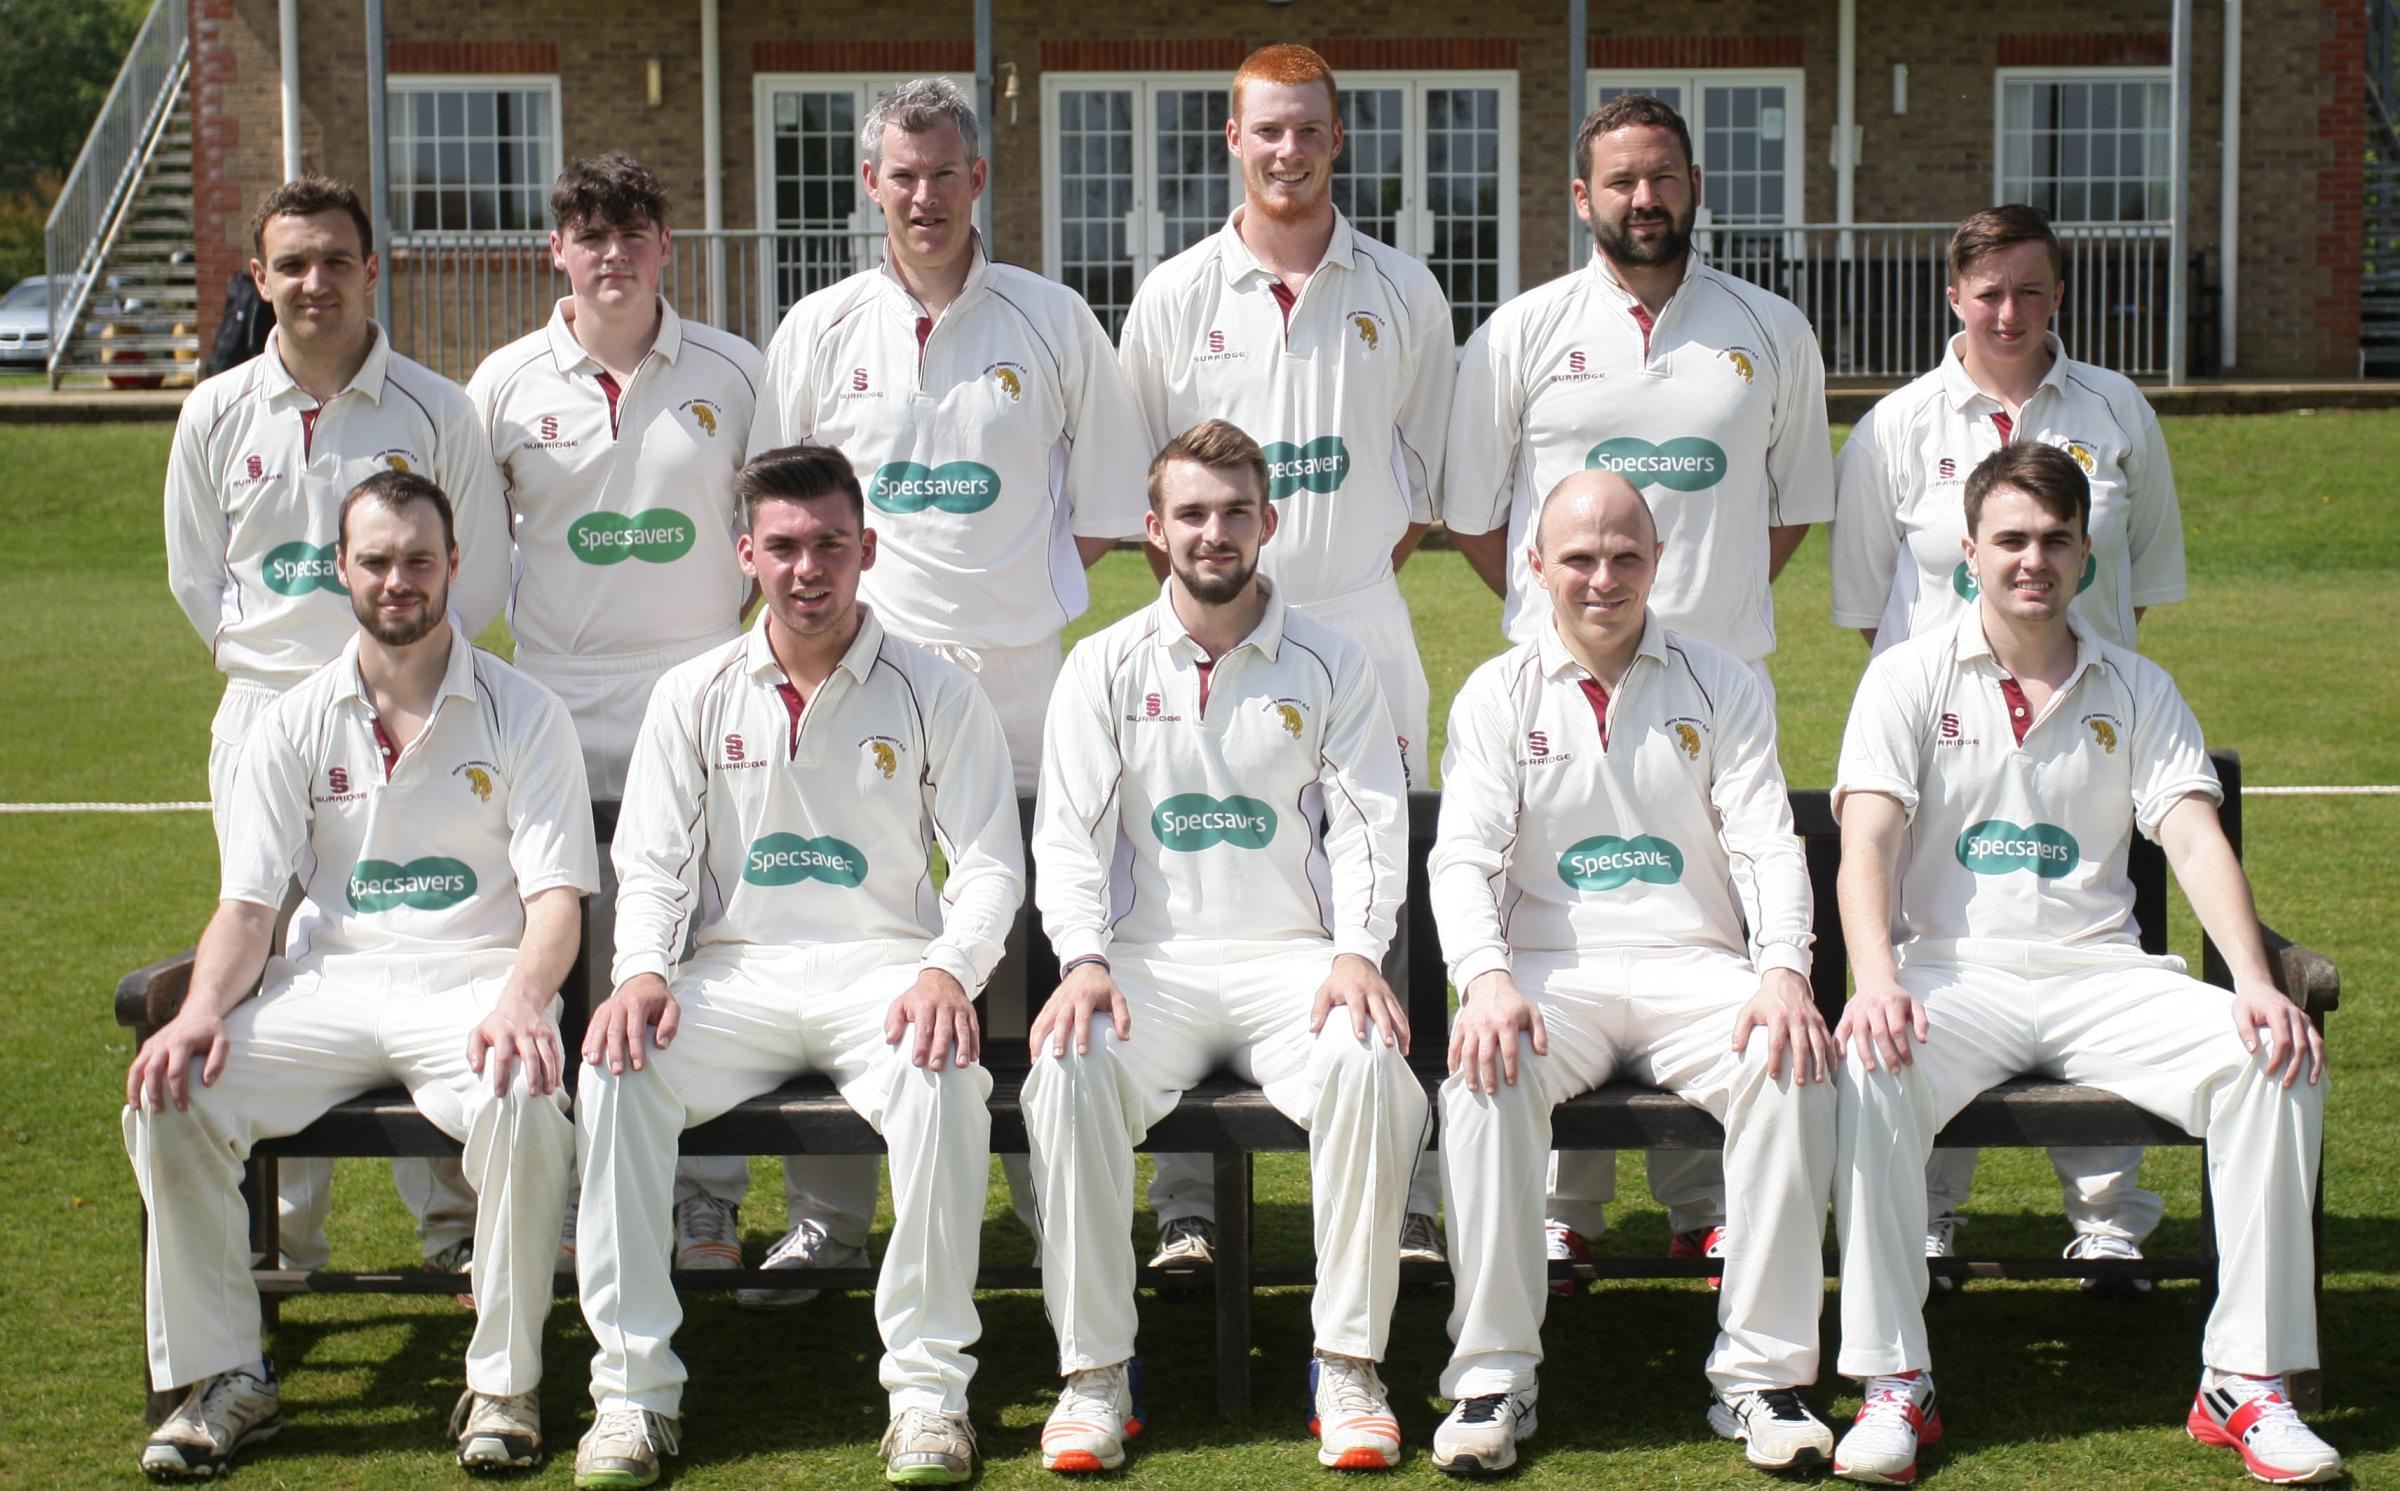 CHAMPIONS: North Perrott won the WEPL Somerset title